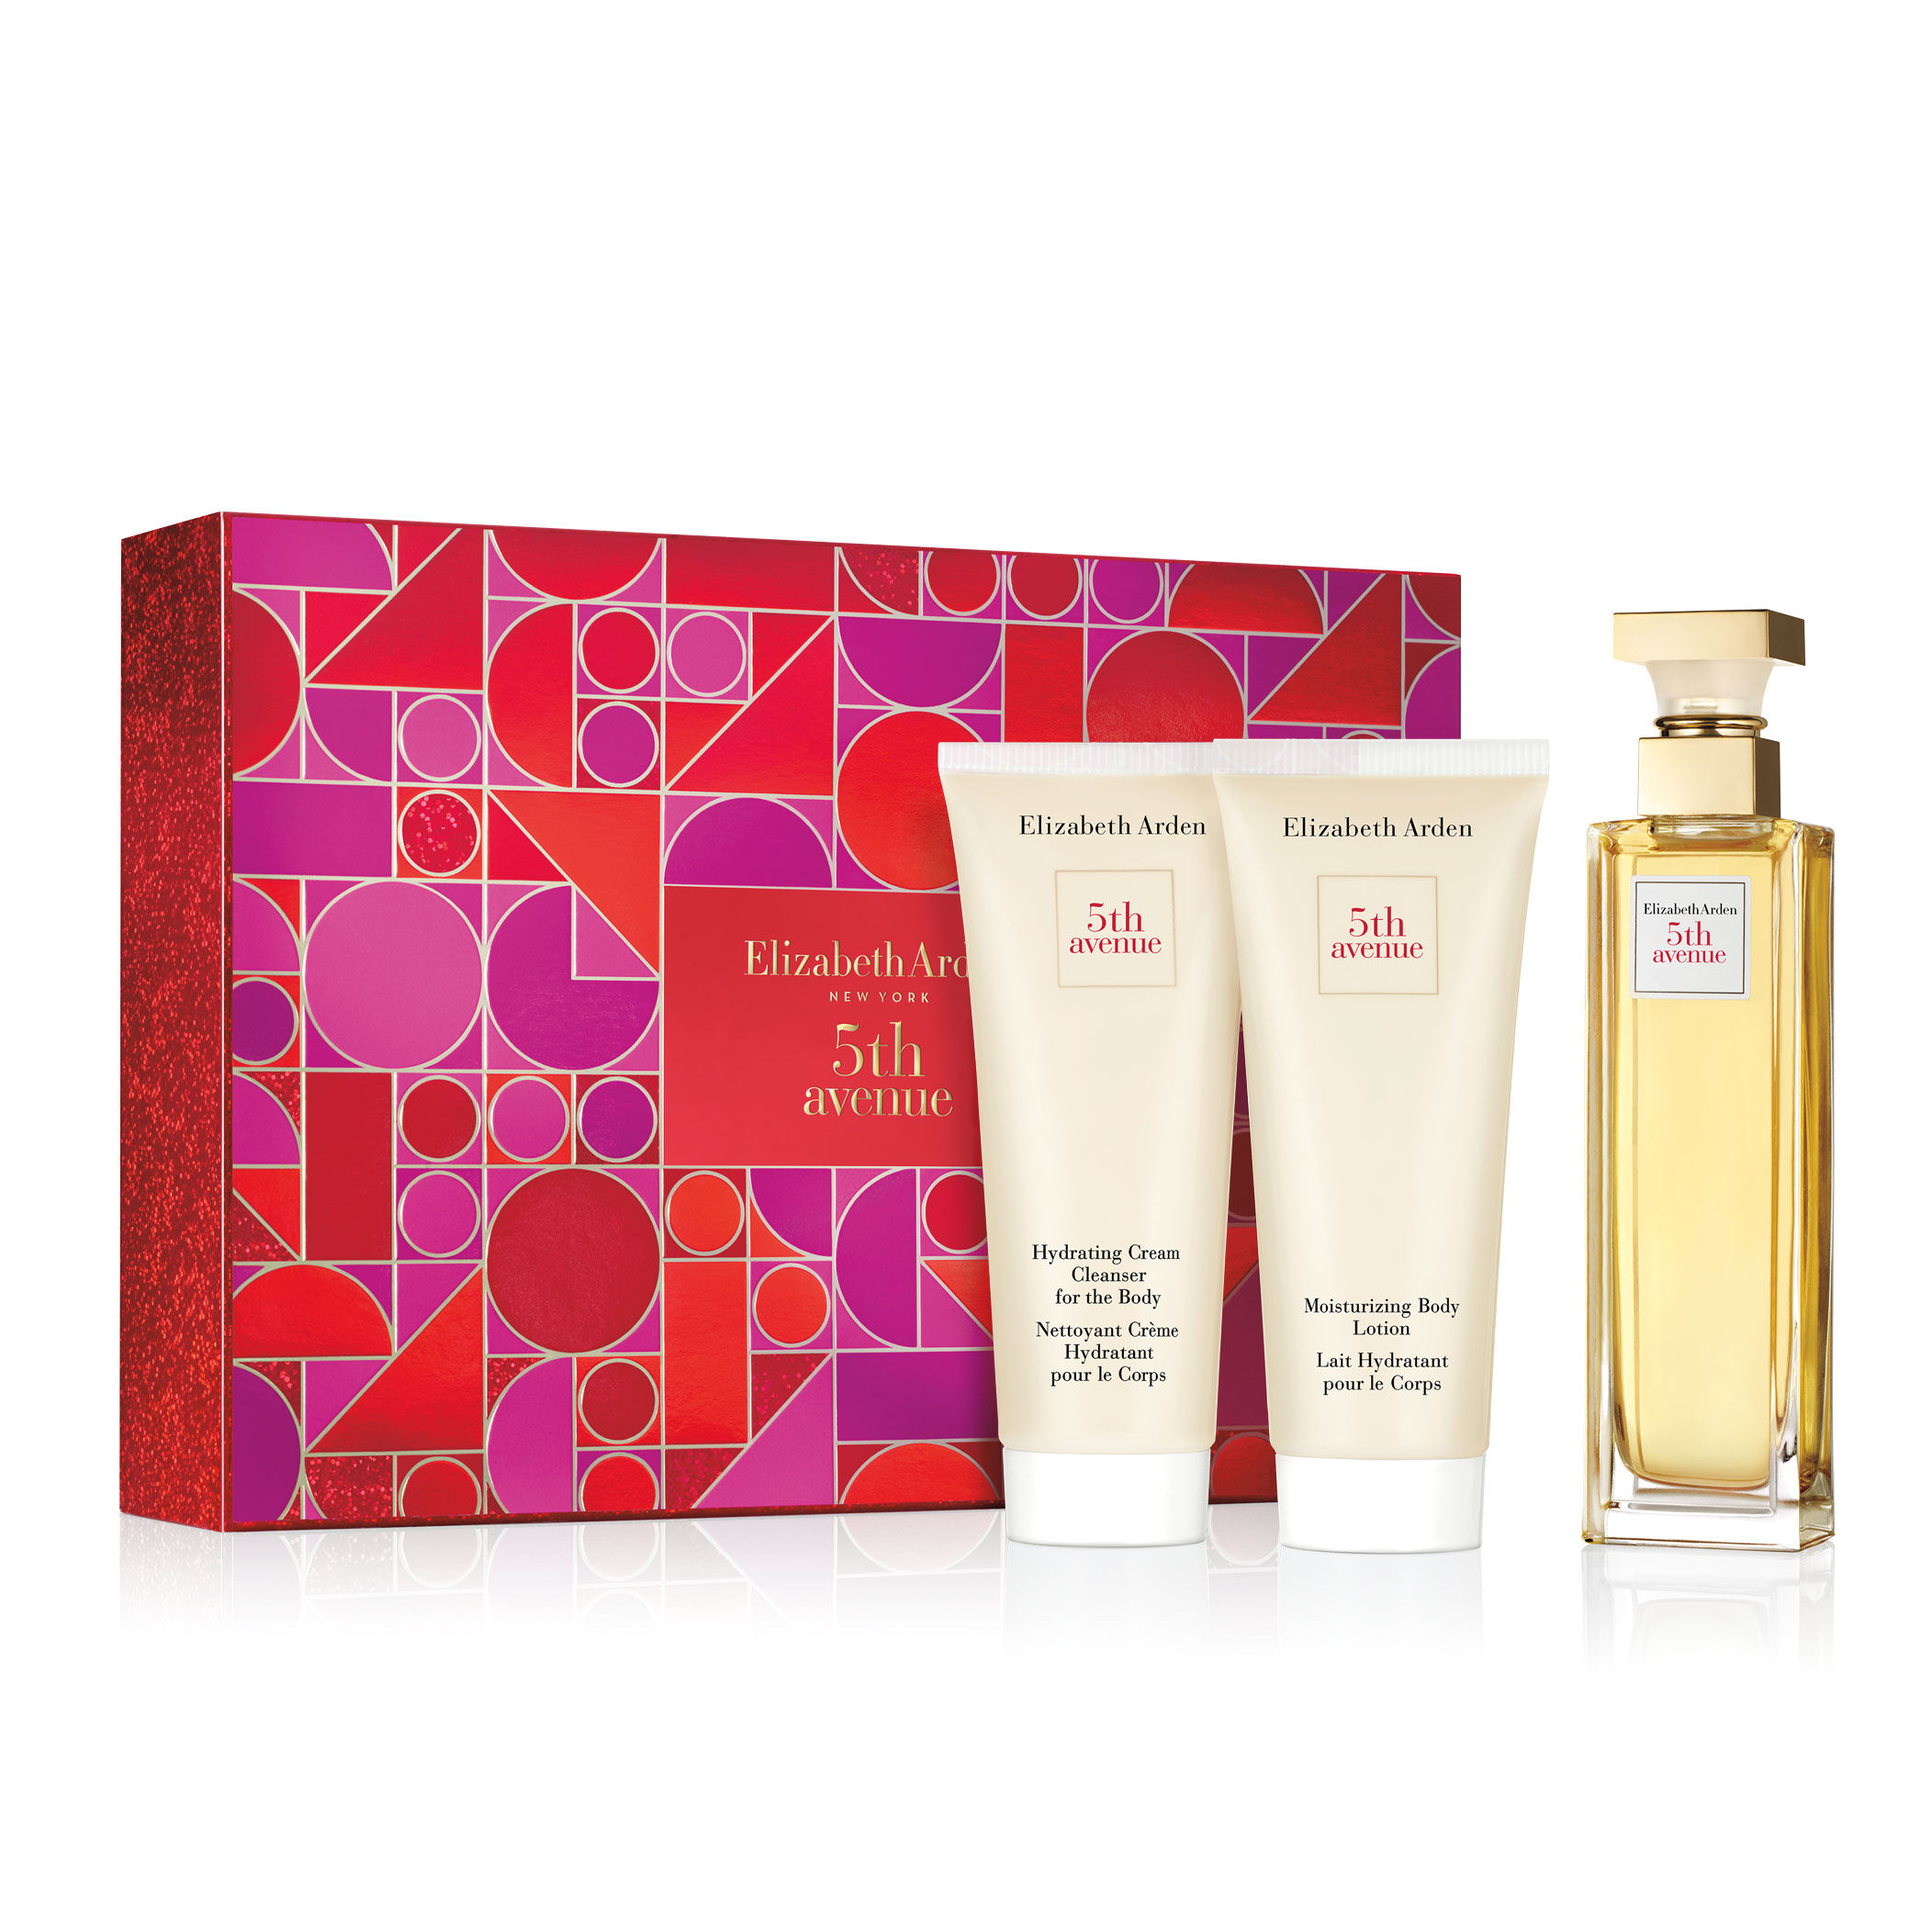 Fragrance Gift Sets for Women | Romantic Perfume Gifts - Elizabeth ...